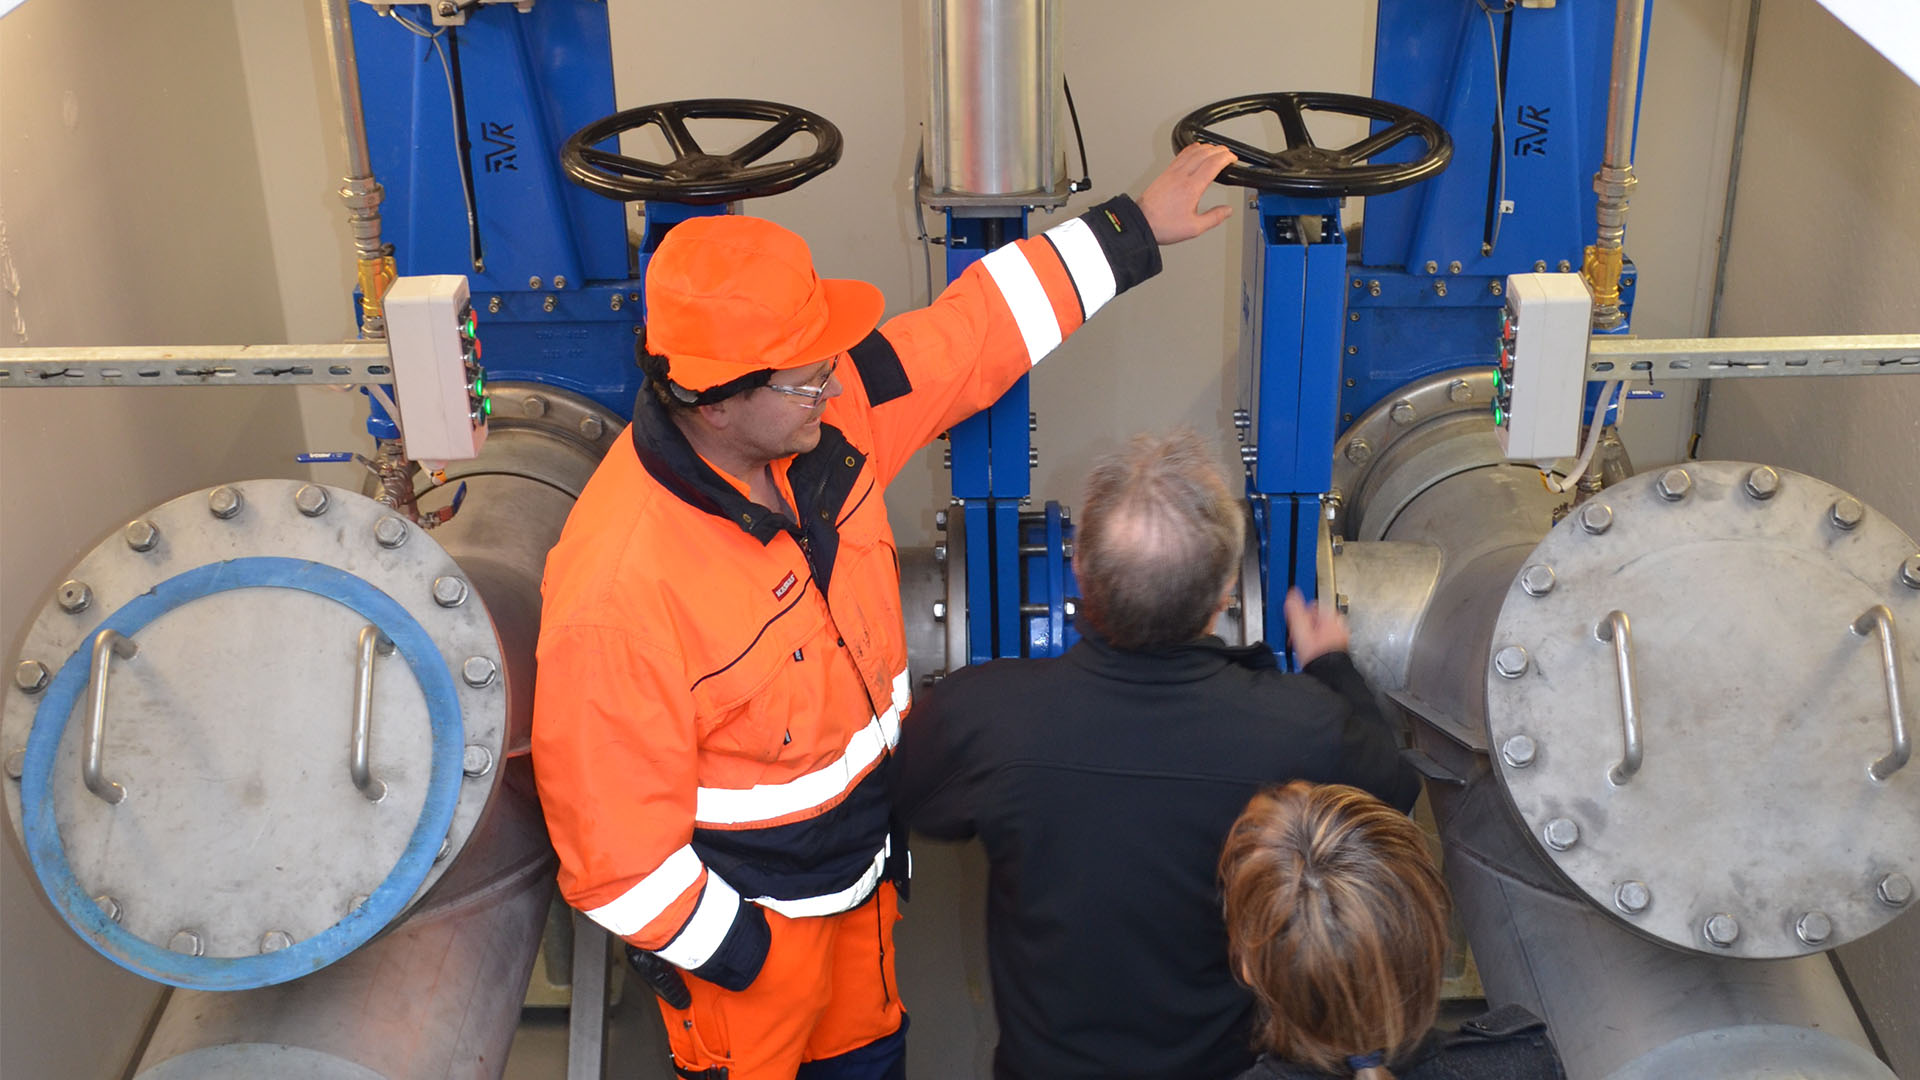 Representive from Ebeltoft pumping station present some of the installed AVK valves